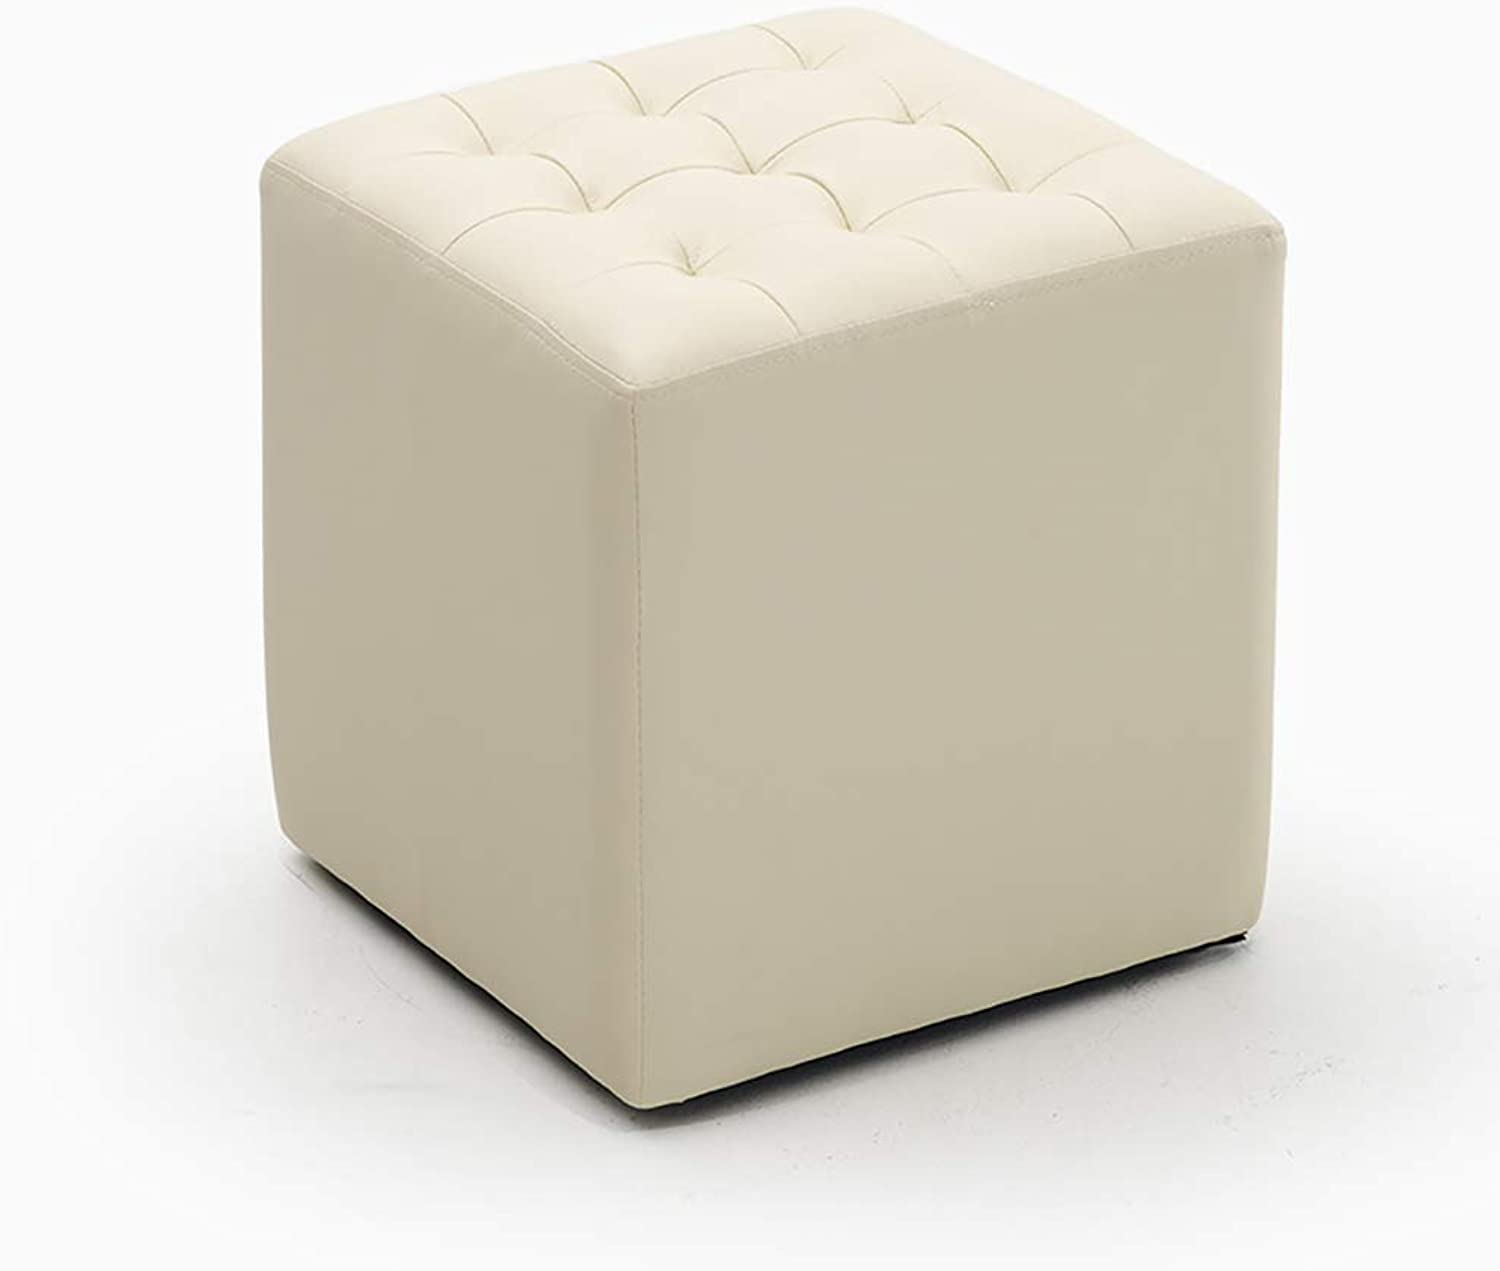 Stools shoes Benches Benches Sofa stools Storage Soft and Comfortable PVC Material, Suitable for The Family Store Living Room, (34.5  34.5  36CM)